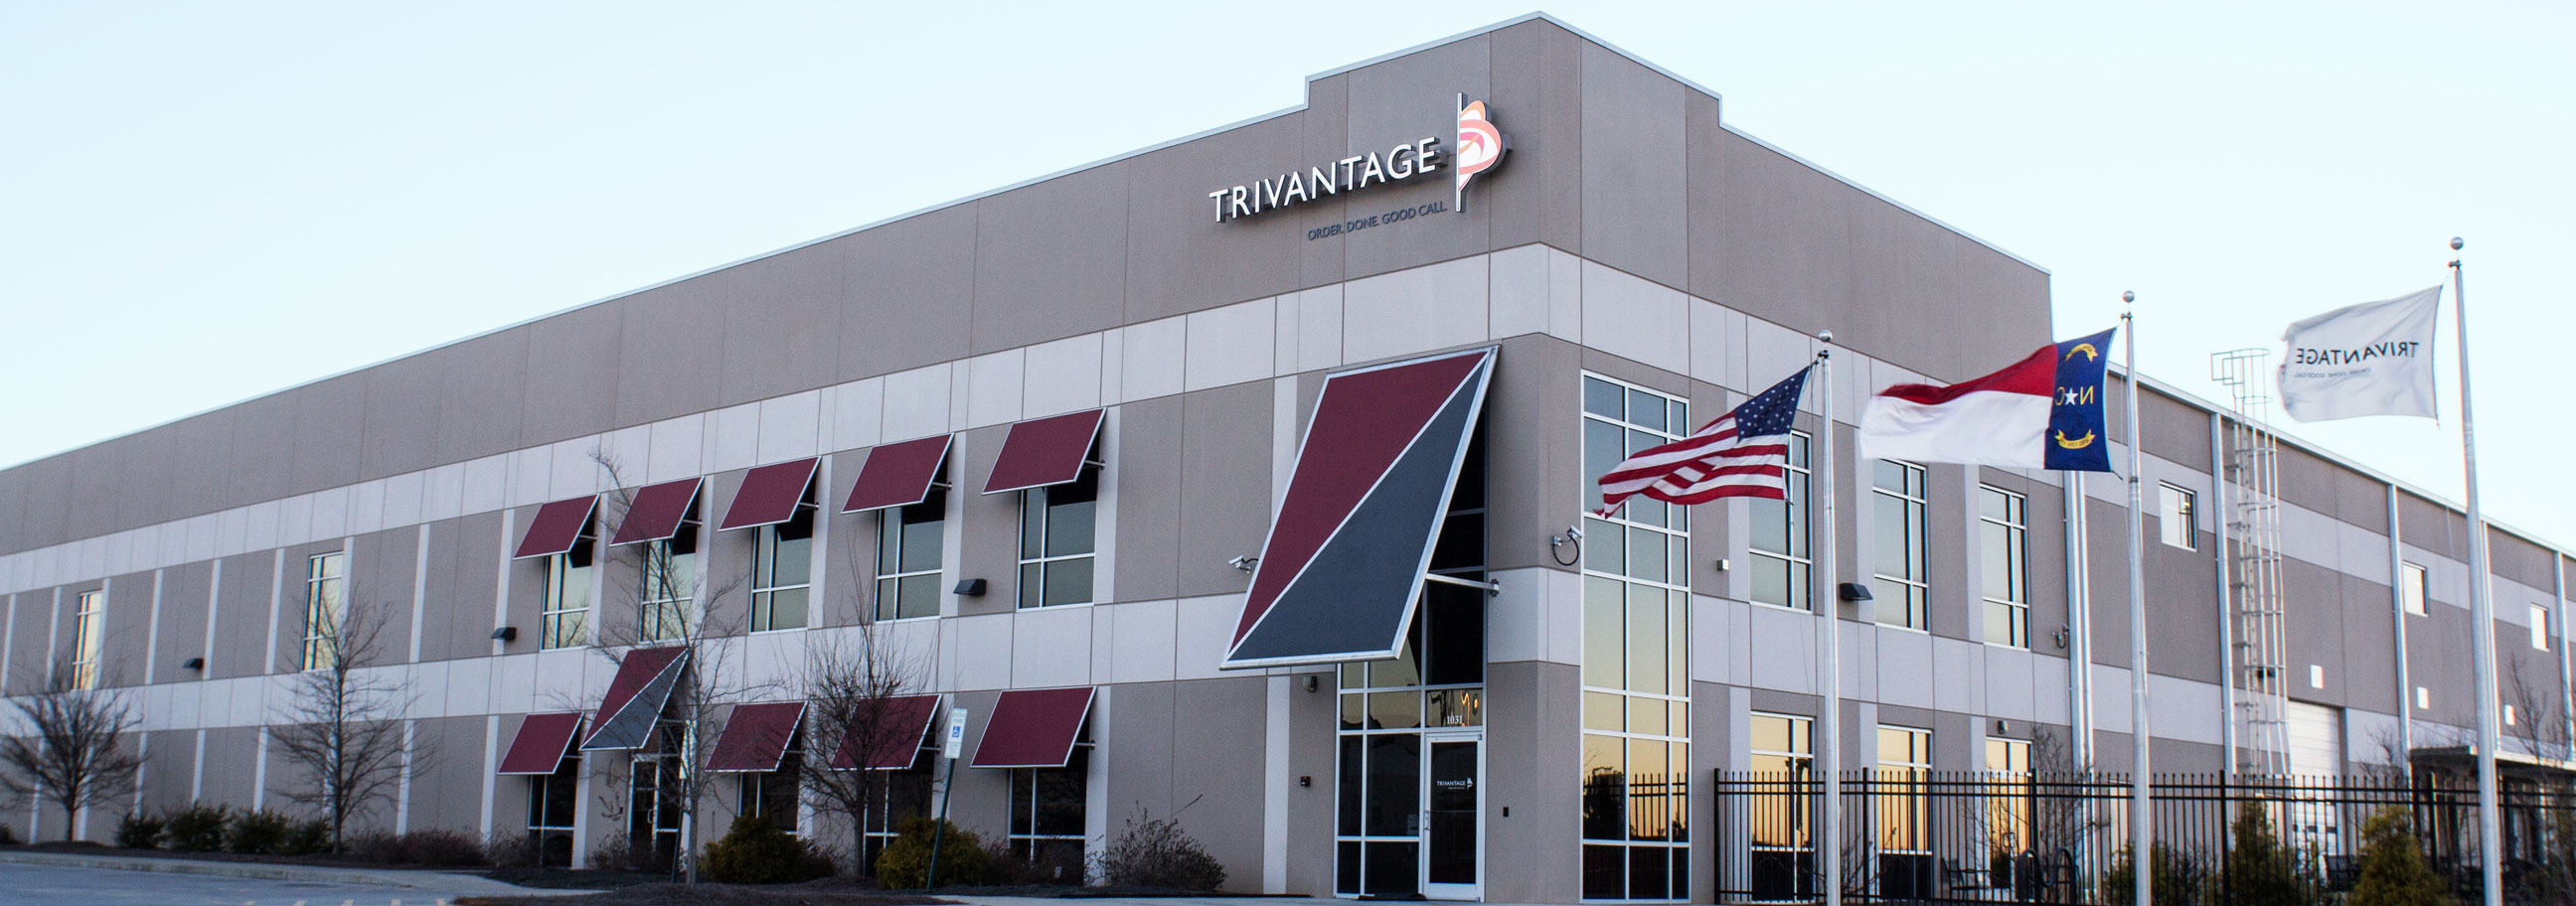 About Trivantage, nationwide distributor of fabrics and more